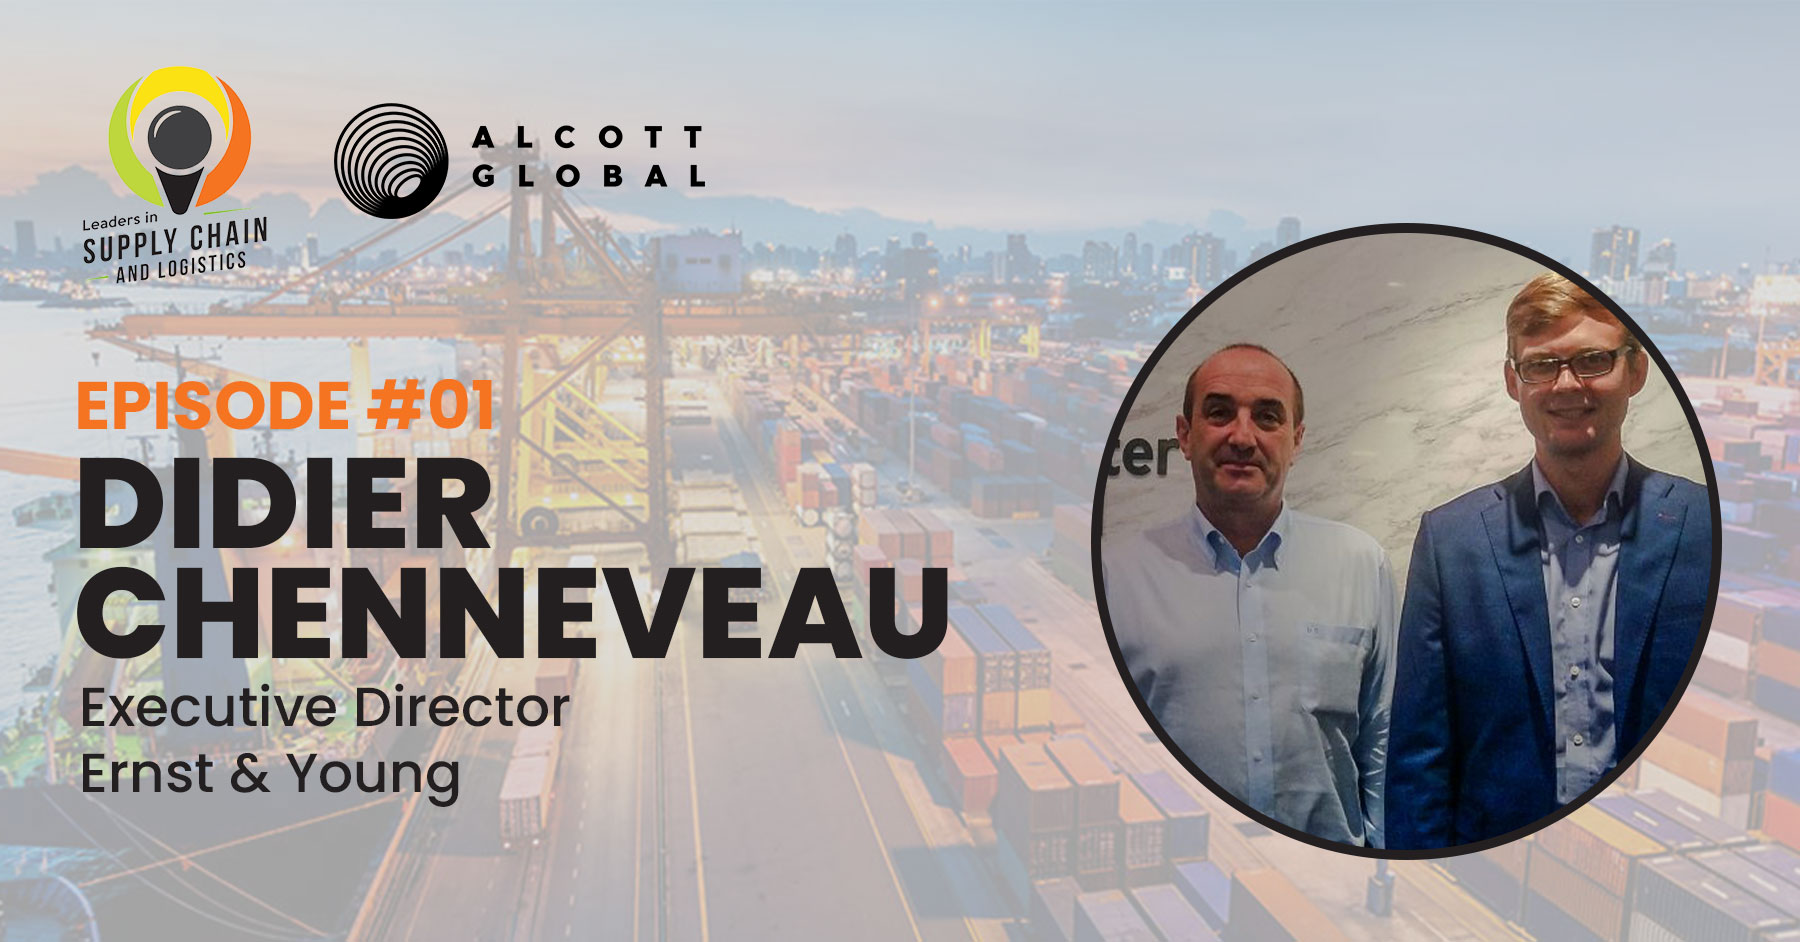 #01: Didier Chenneveau Executive Director Ernst & Young Featured Image